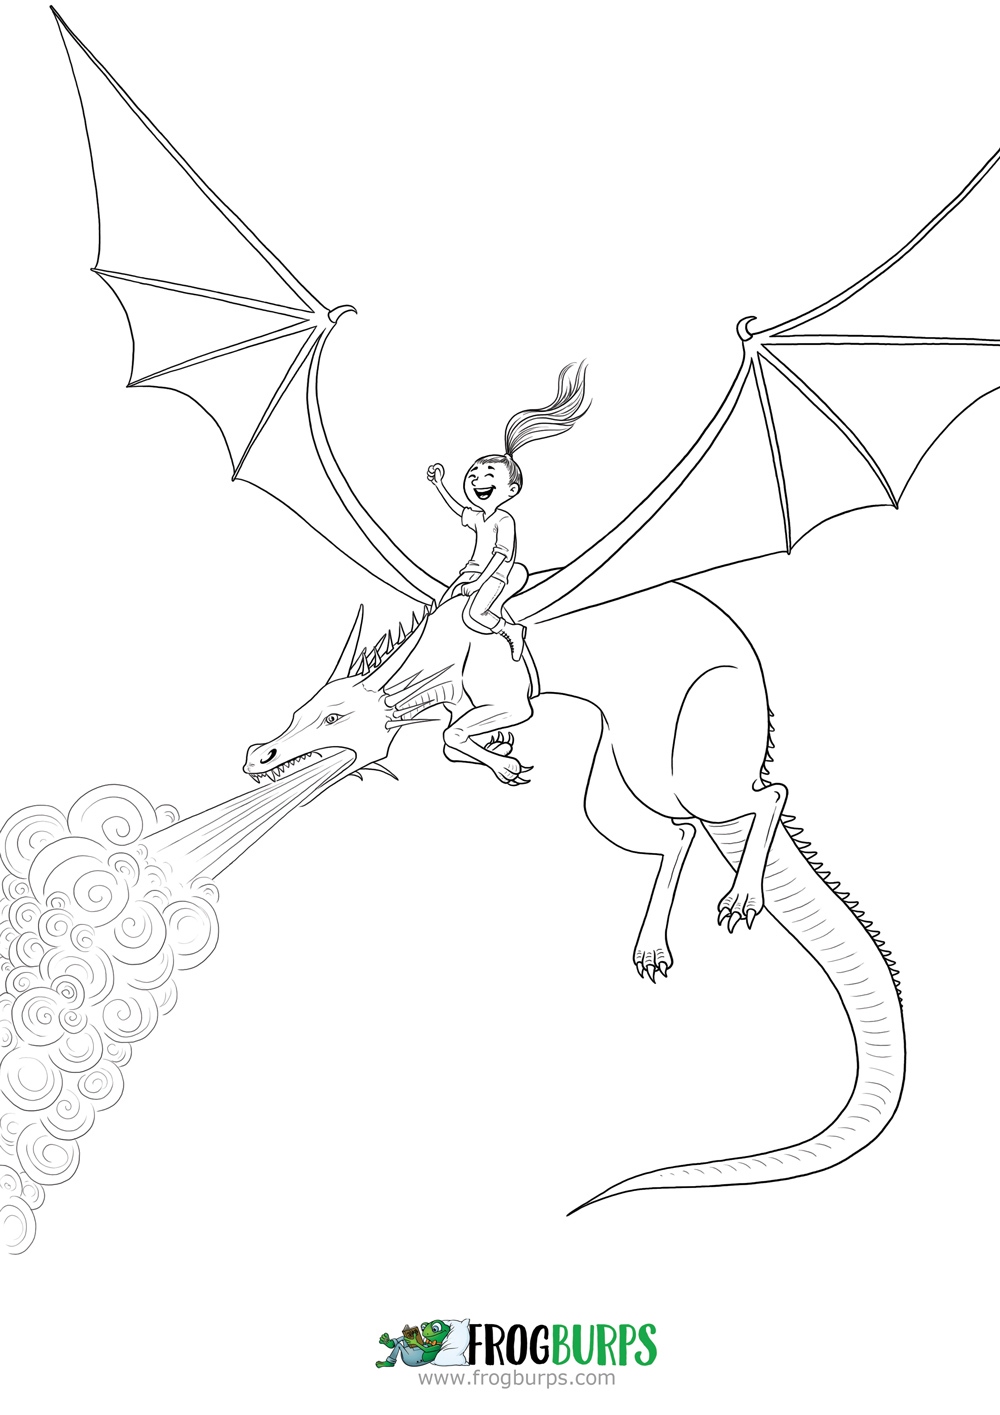 Dragon Rider| Coloring Page